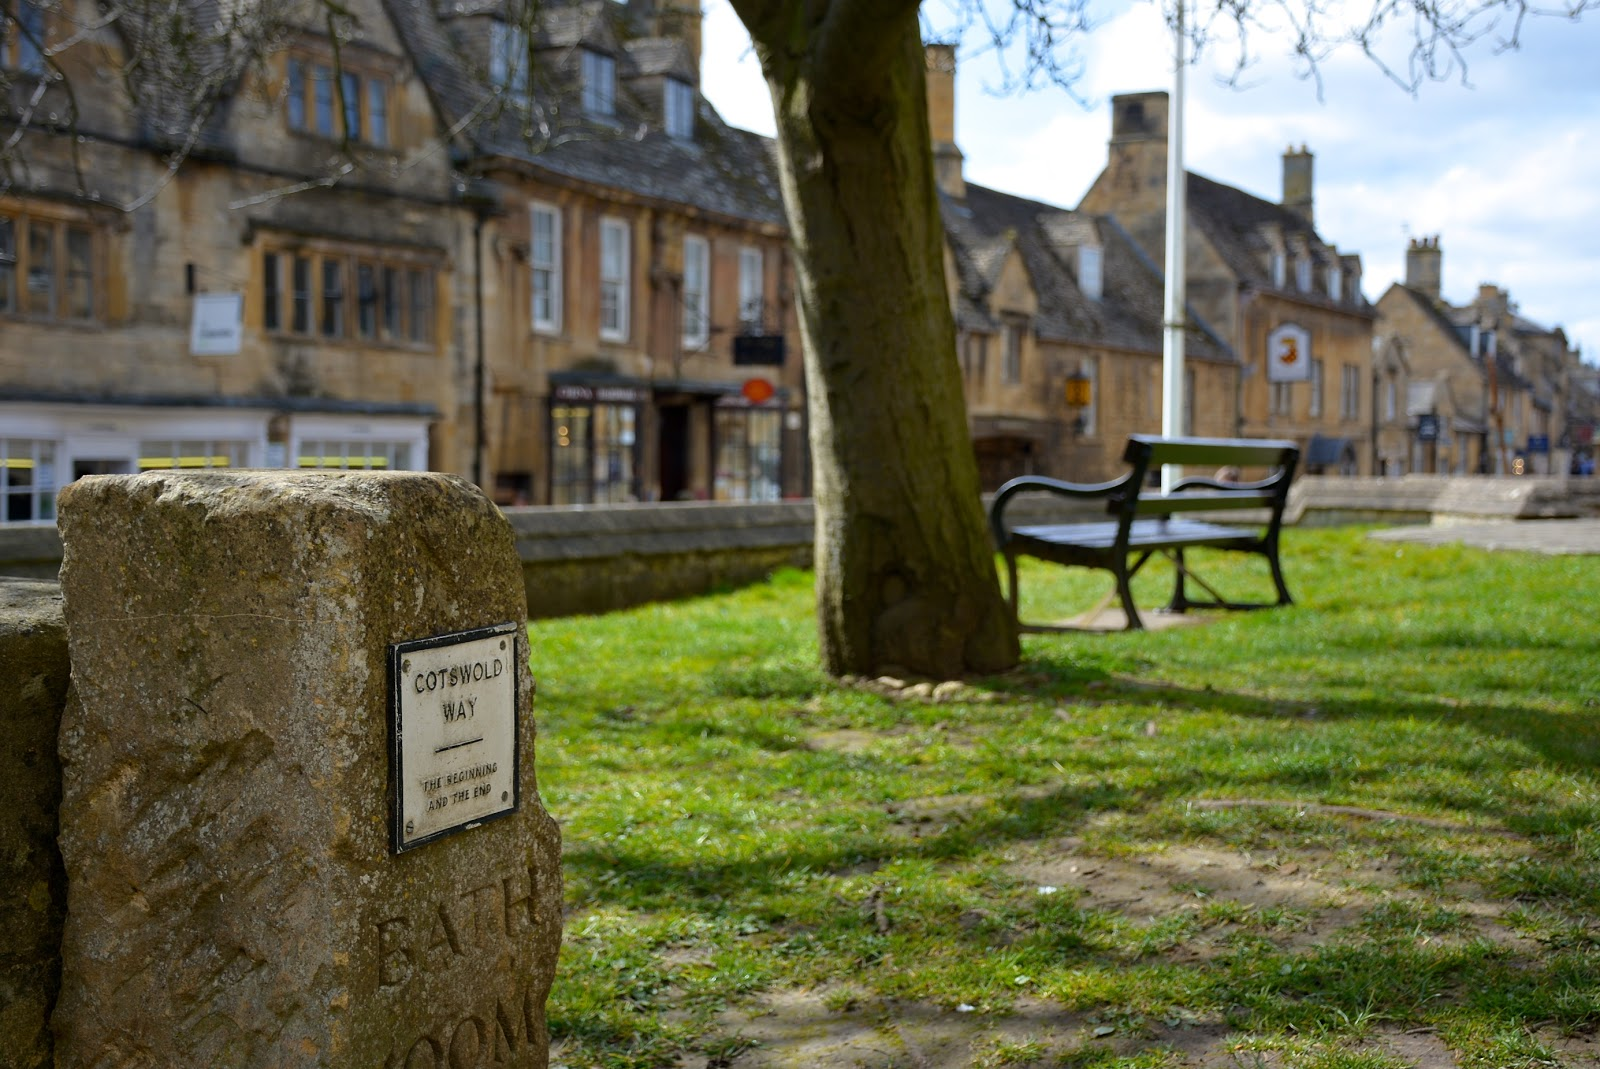 Beginning and finish of the Cotswold Way in Chipping Campden